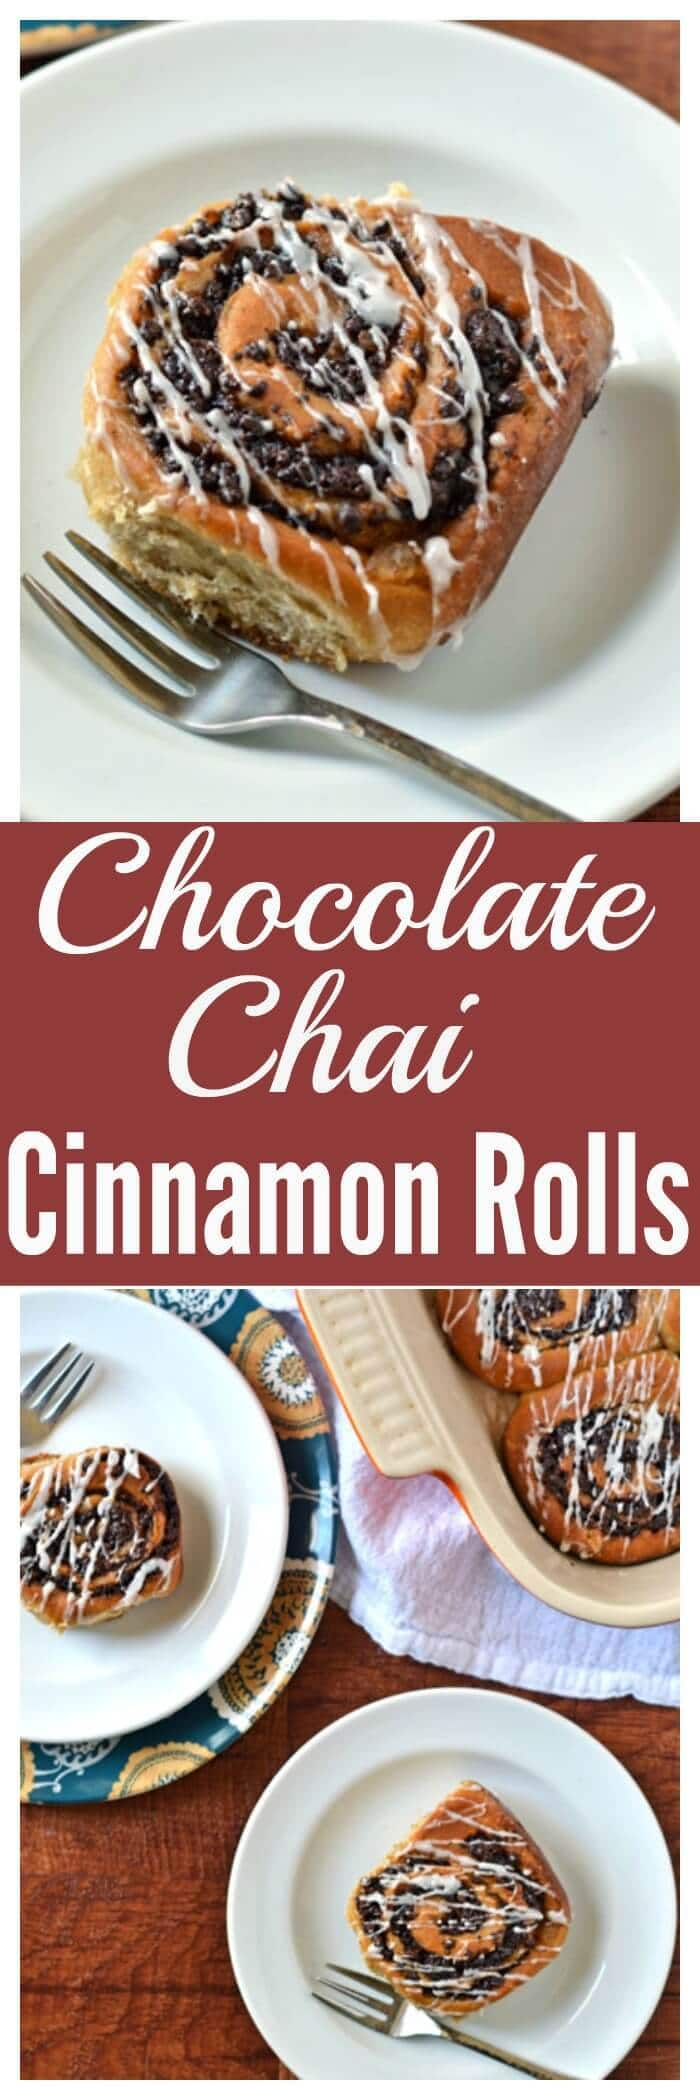 CChocolate Chai Cinnamon Rolls. Fluffy, buttery dough wrapped around a dark chocolate filling with warm chai spices like cinnamon and cardamom. Soft, gooey, and every bite has chocolate!